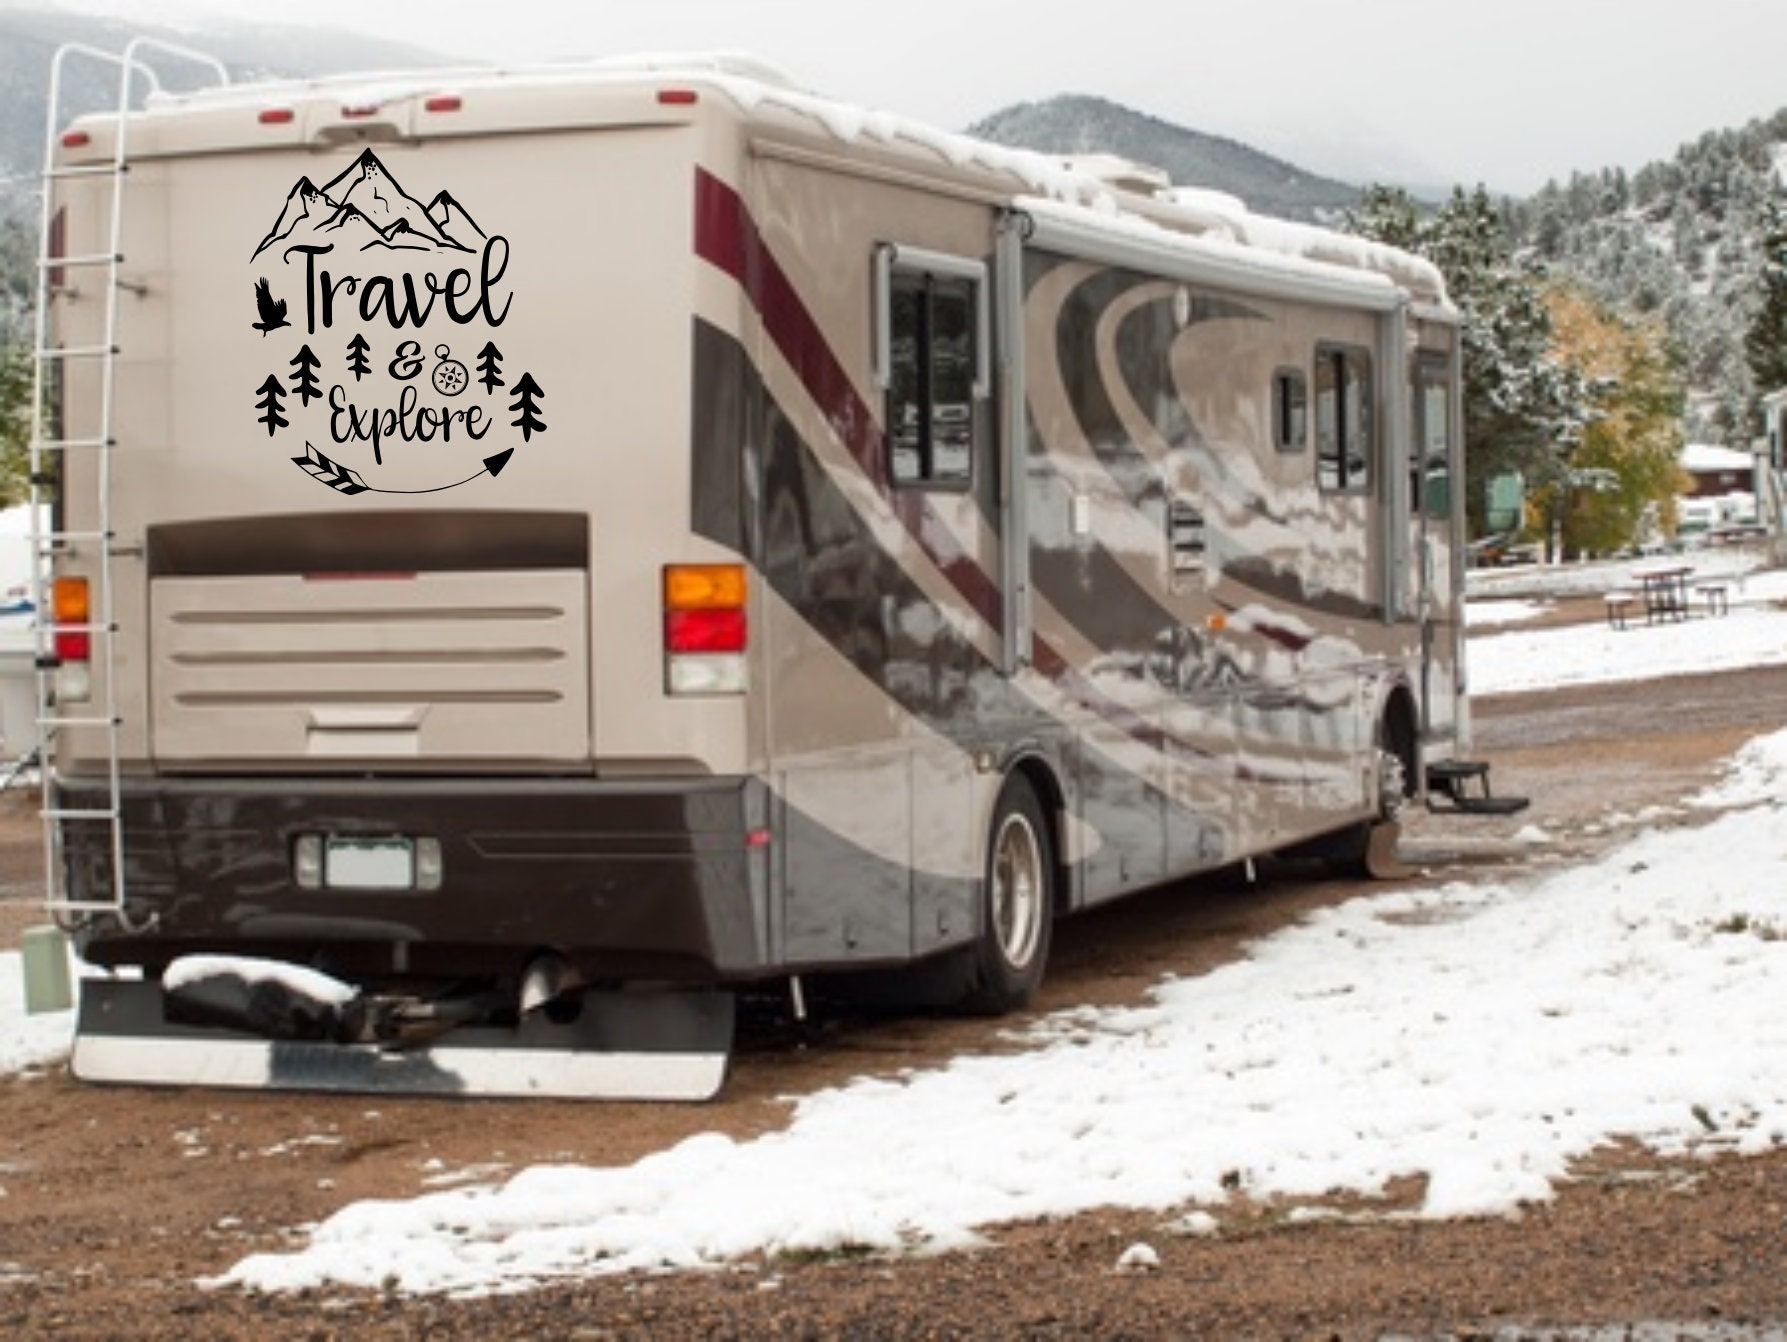 Travel rv decal rv travel decal travel and explore travel decal explore decal mountain rv decal travel wall decor custom rv decals